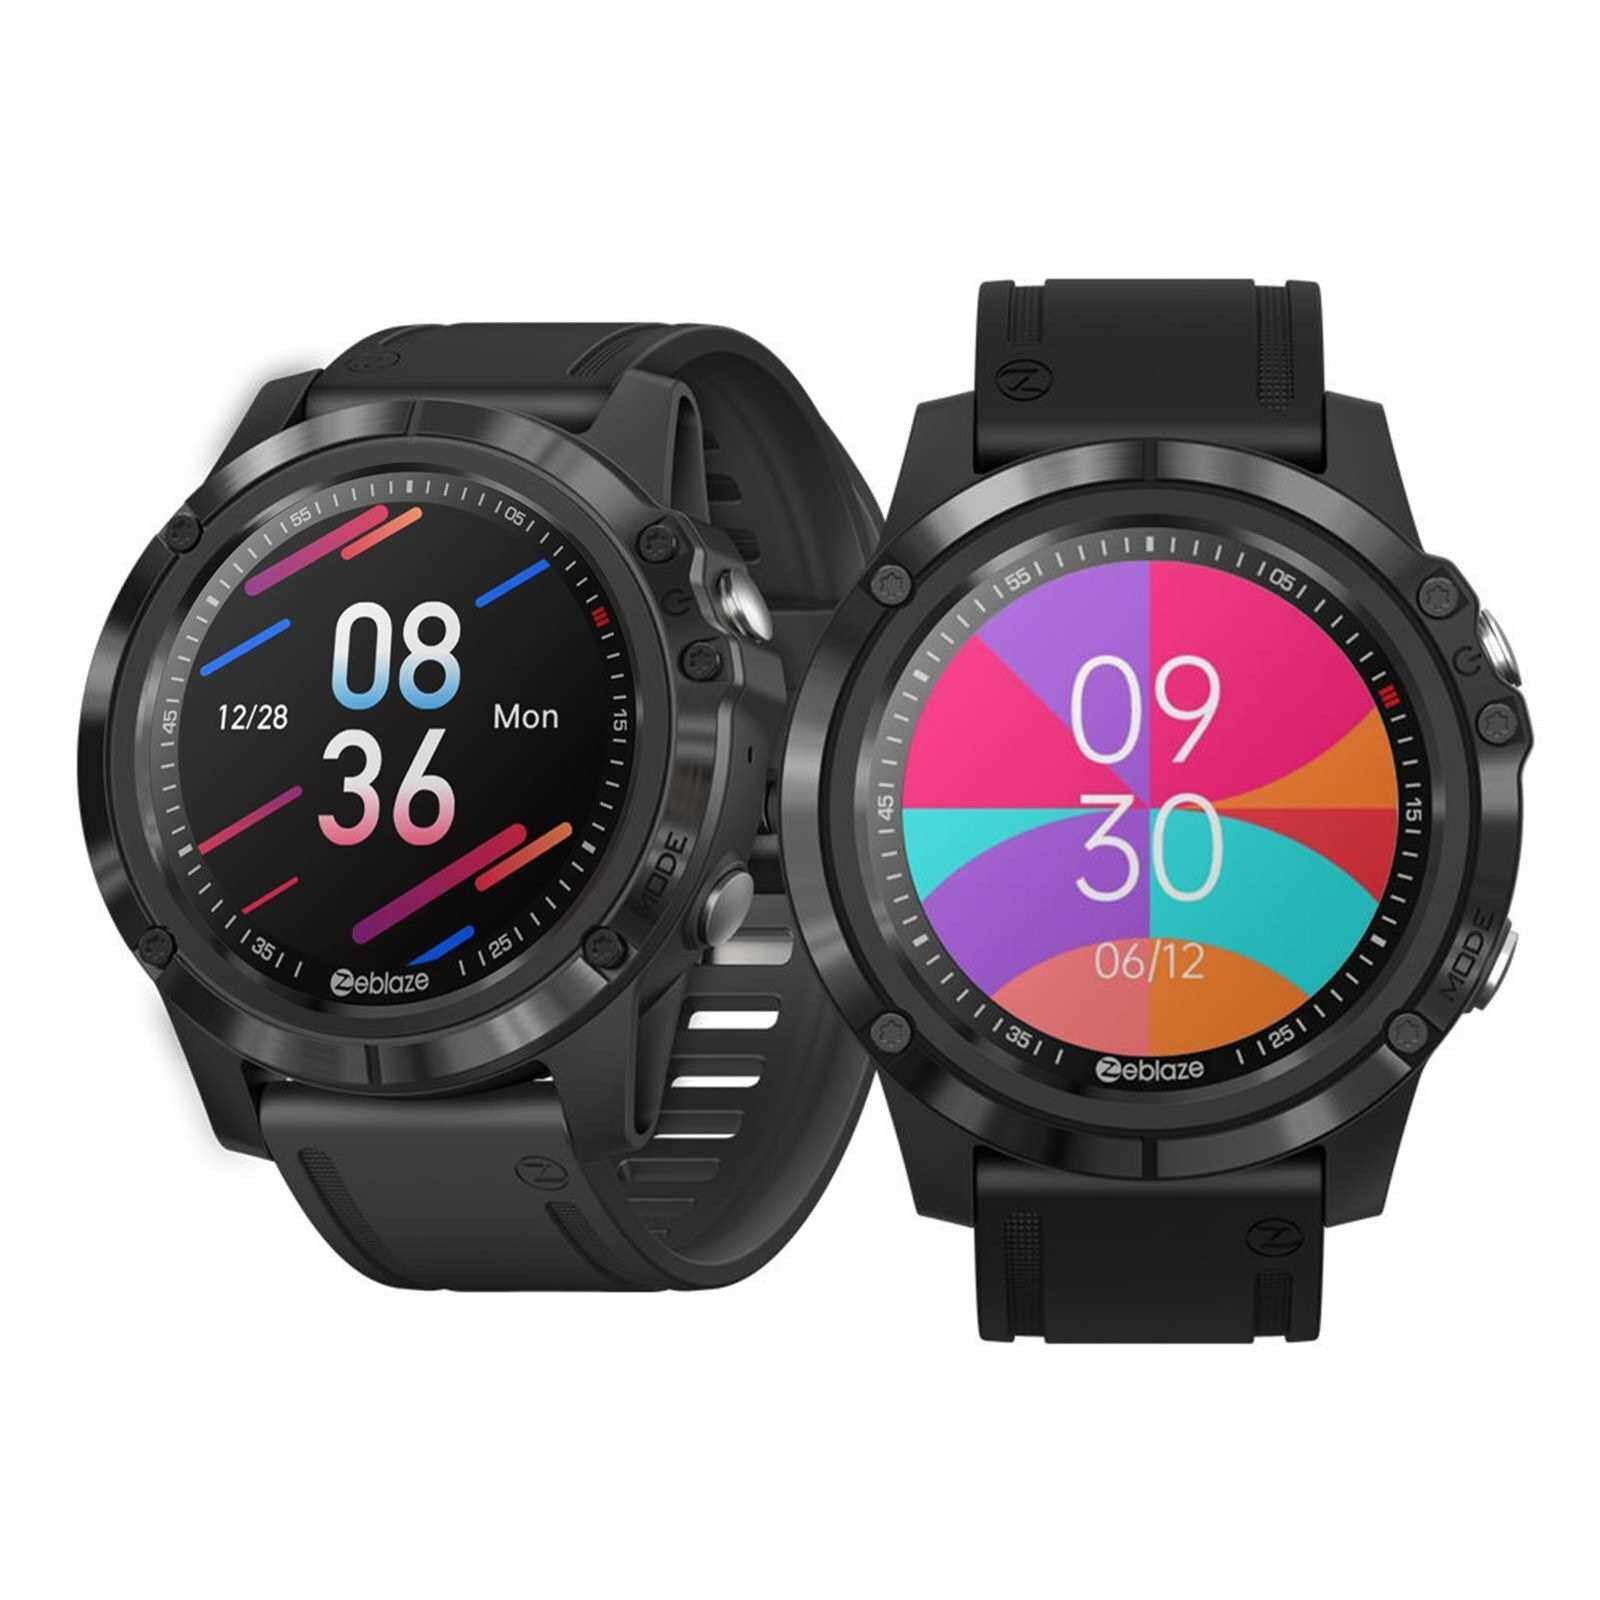 Zeblaze VIBE 3S HD Smart Watch 1.3-Inch TFT Screen 360*360 Resolution BT5.0 Fitness Tracker IP67 Waterproof Sleep/Heart Rate/Blood Pressure Monitor Multiple Sports Mode Message/Call/Sedentary Reminder Remote Camera Compatible with Android iOS (Black)